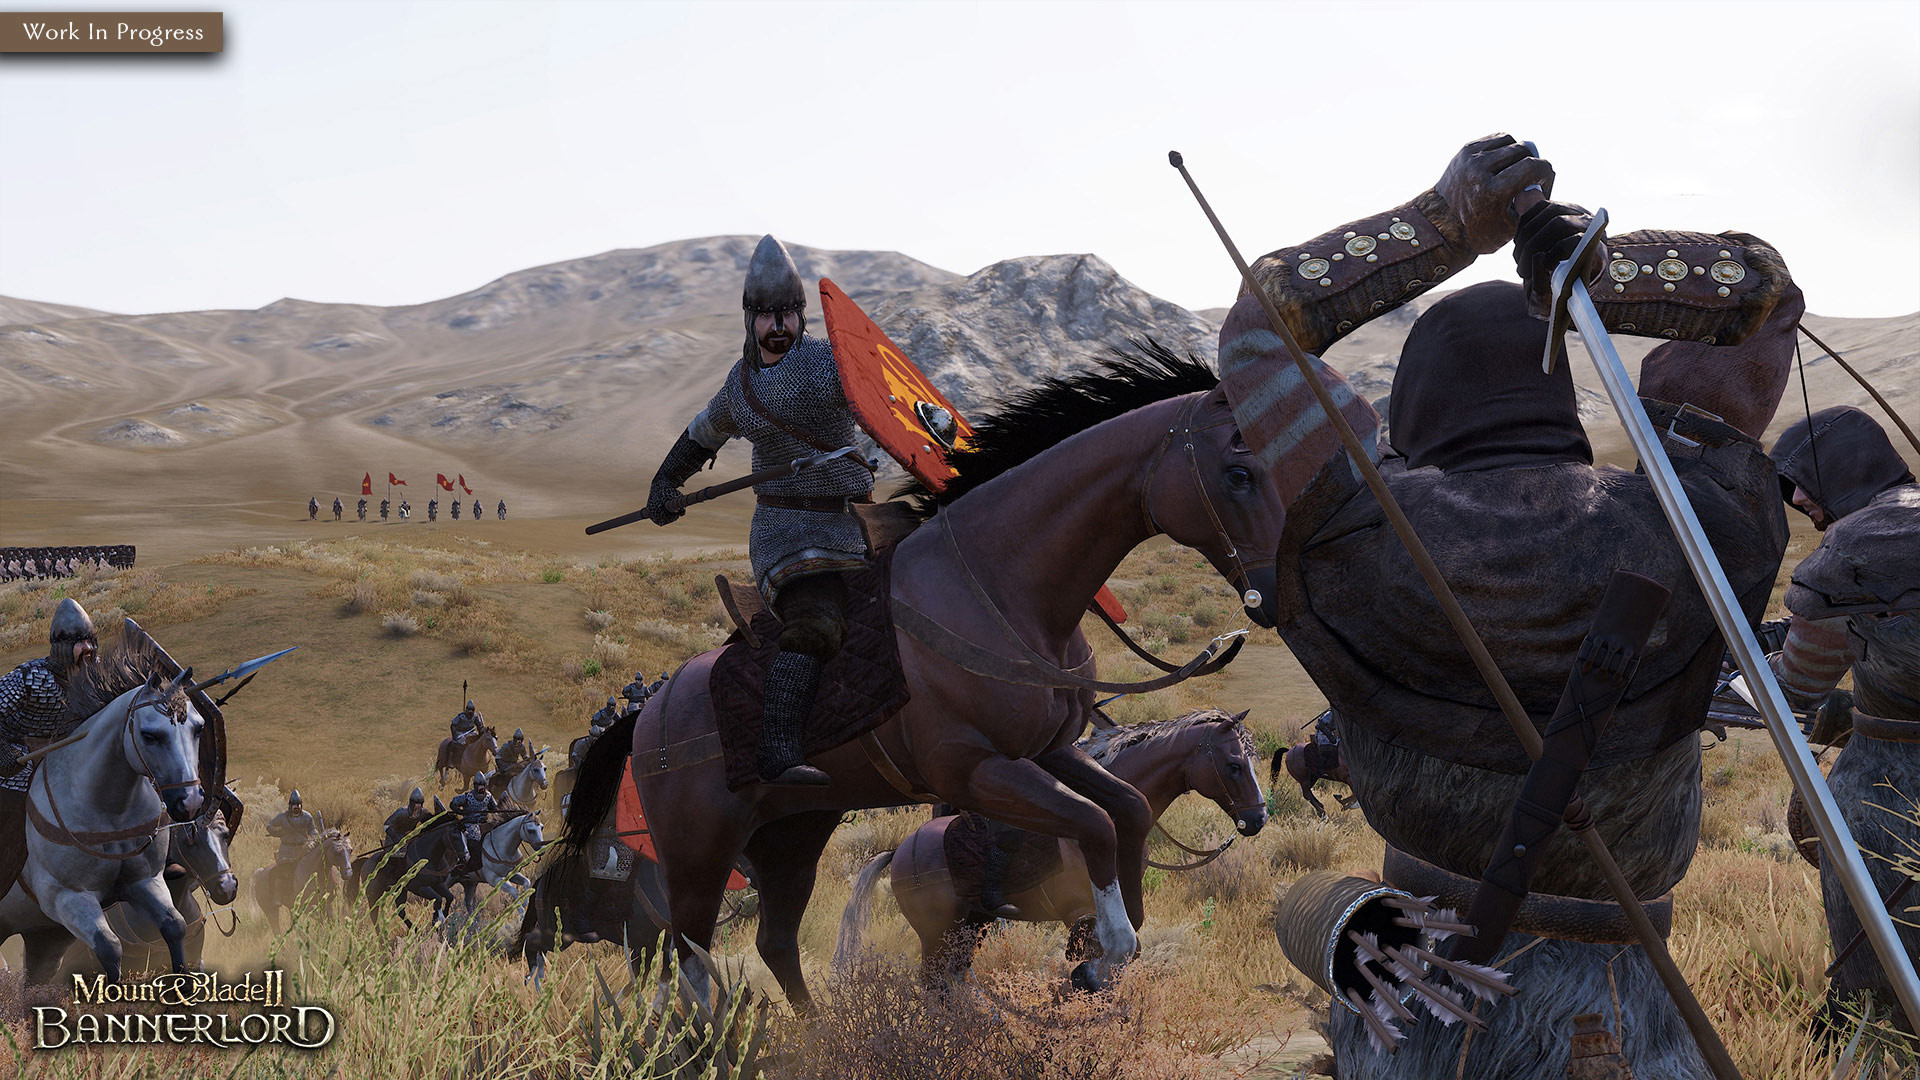 When does Mount and Blade II: Bannerlord release for PlayStation 4 and Xbox One?